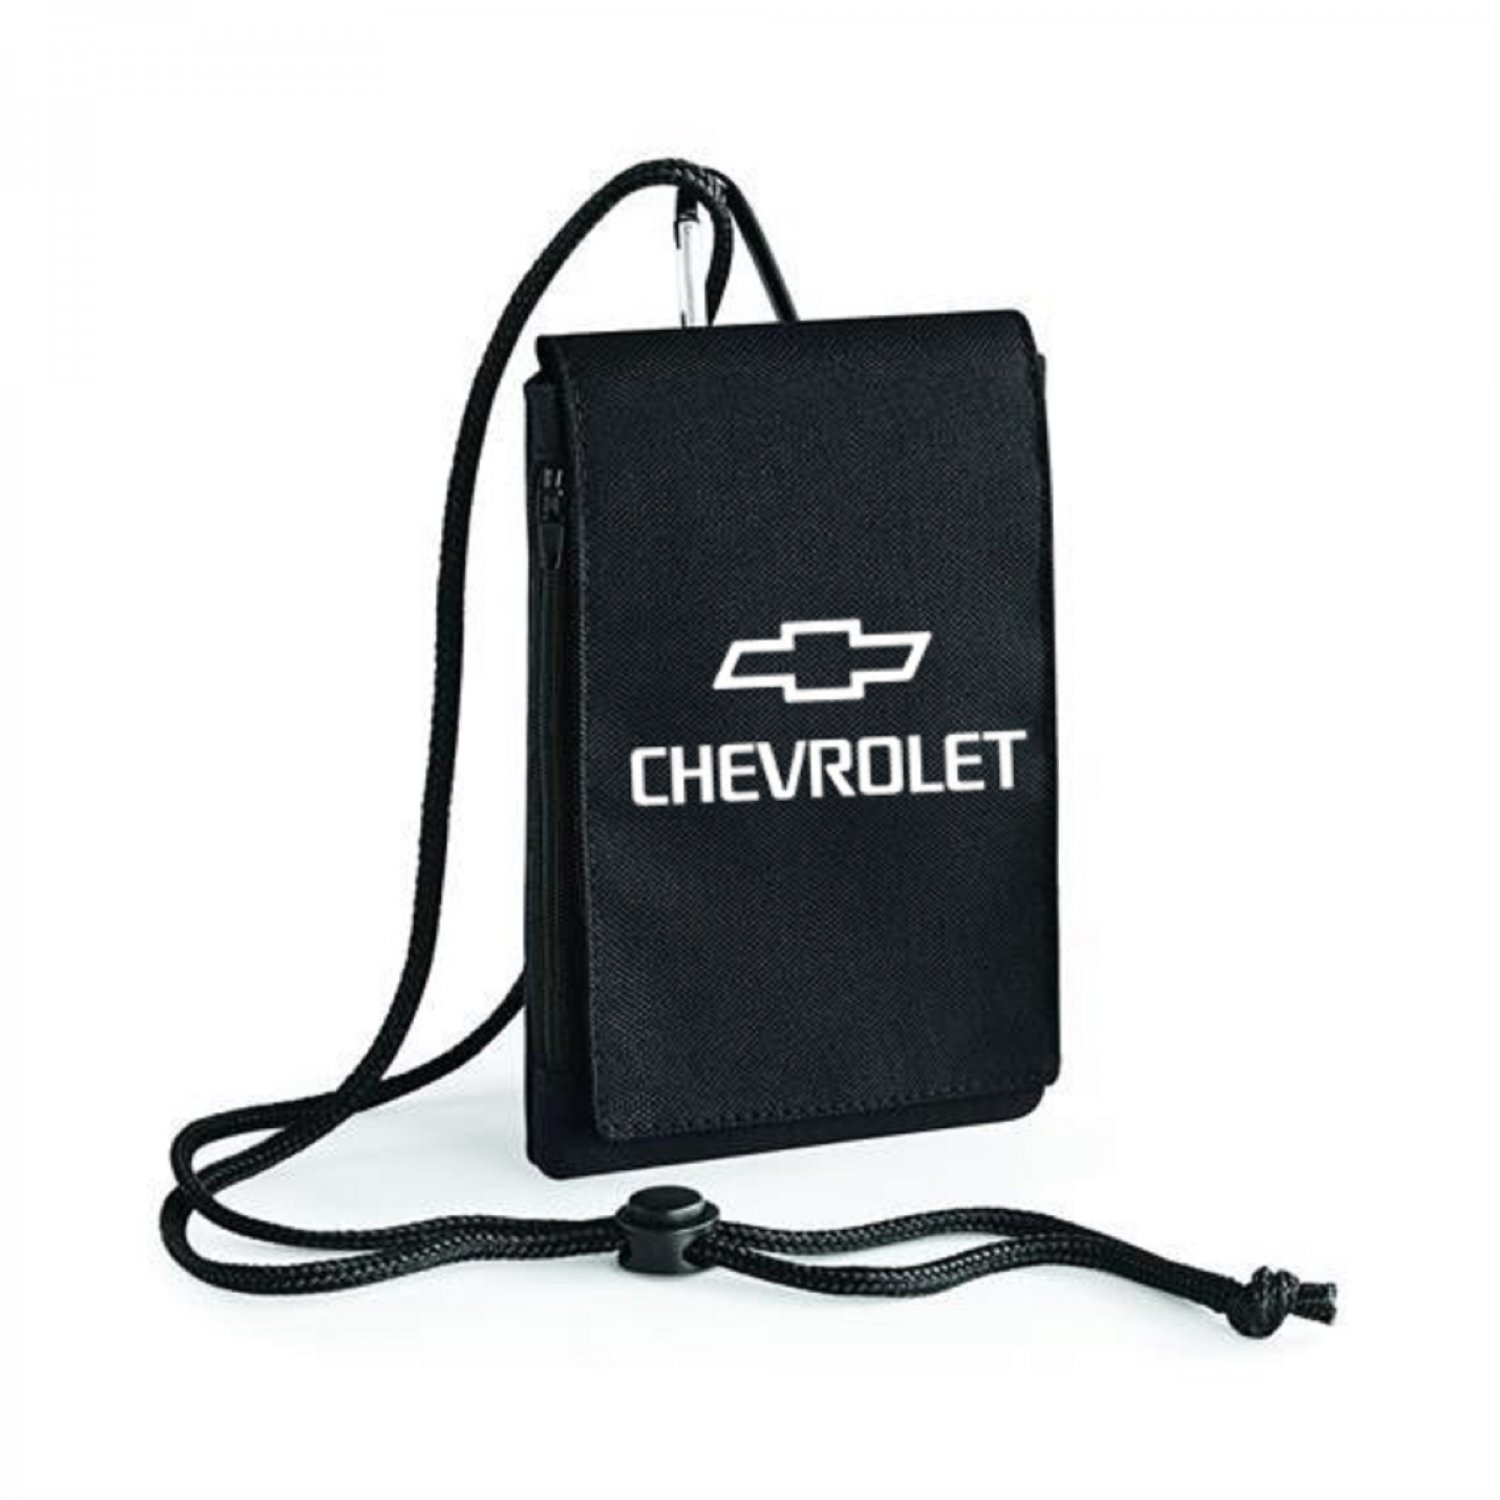 Chevrolet Logo Inspired Bagbase Phone Pouch